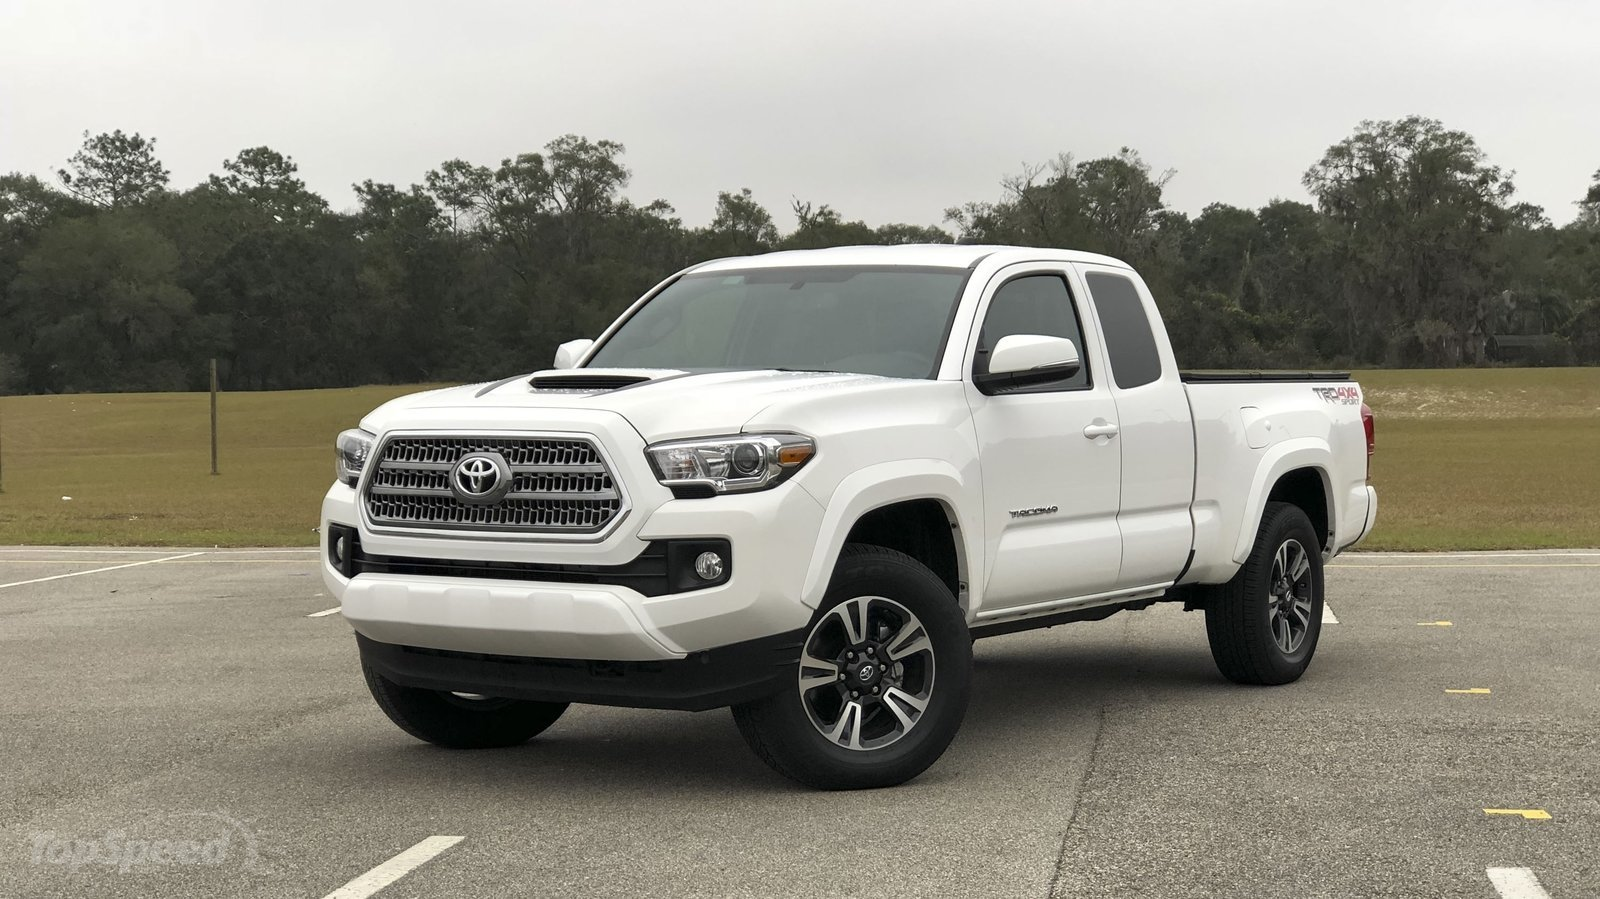 2017 toyota tacoma trd sport driven review top speed. Black Bedroom Furniture Sets. Home Design Ideas